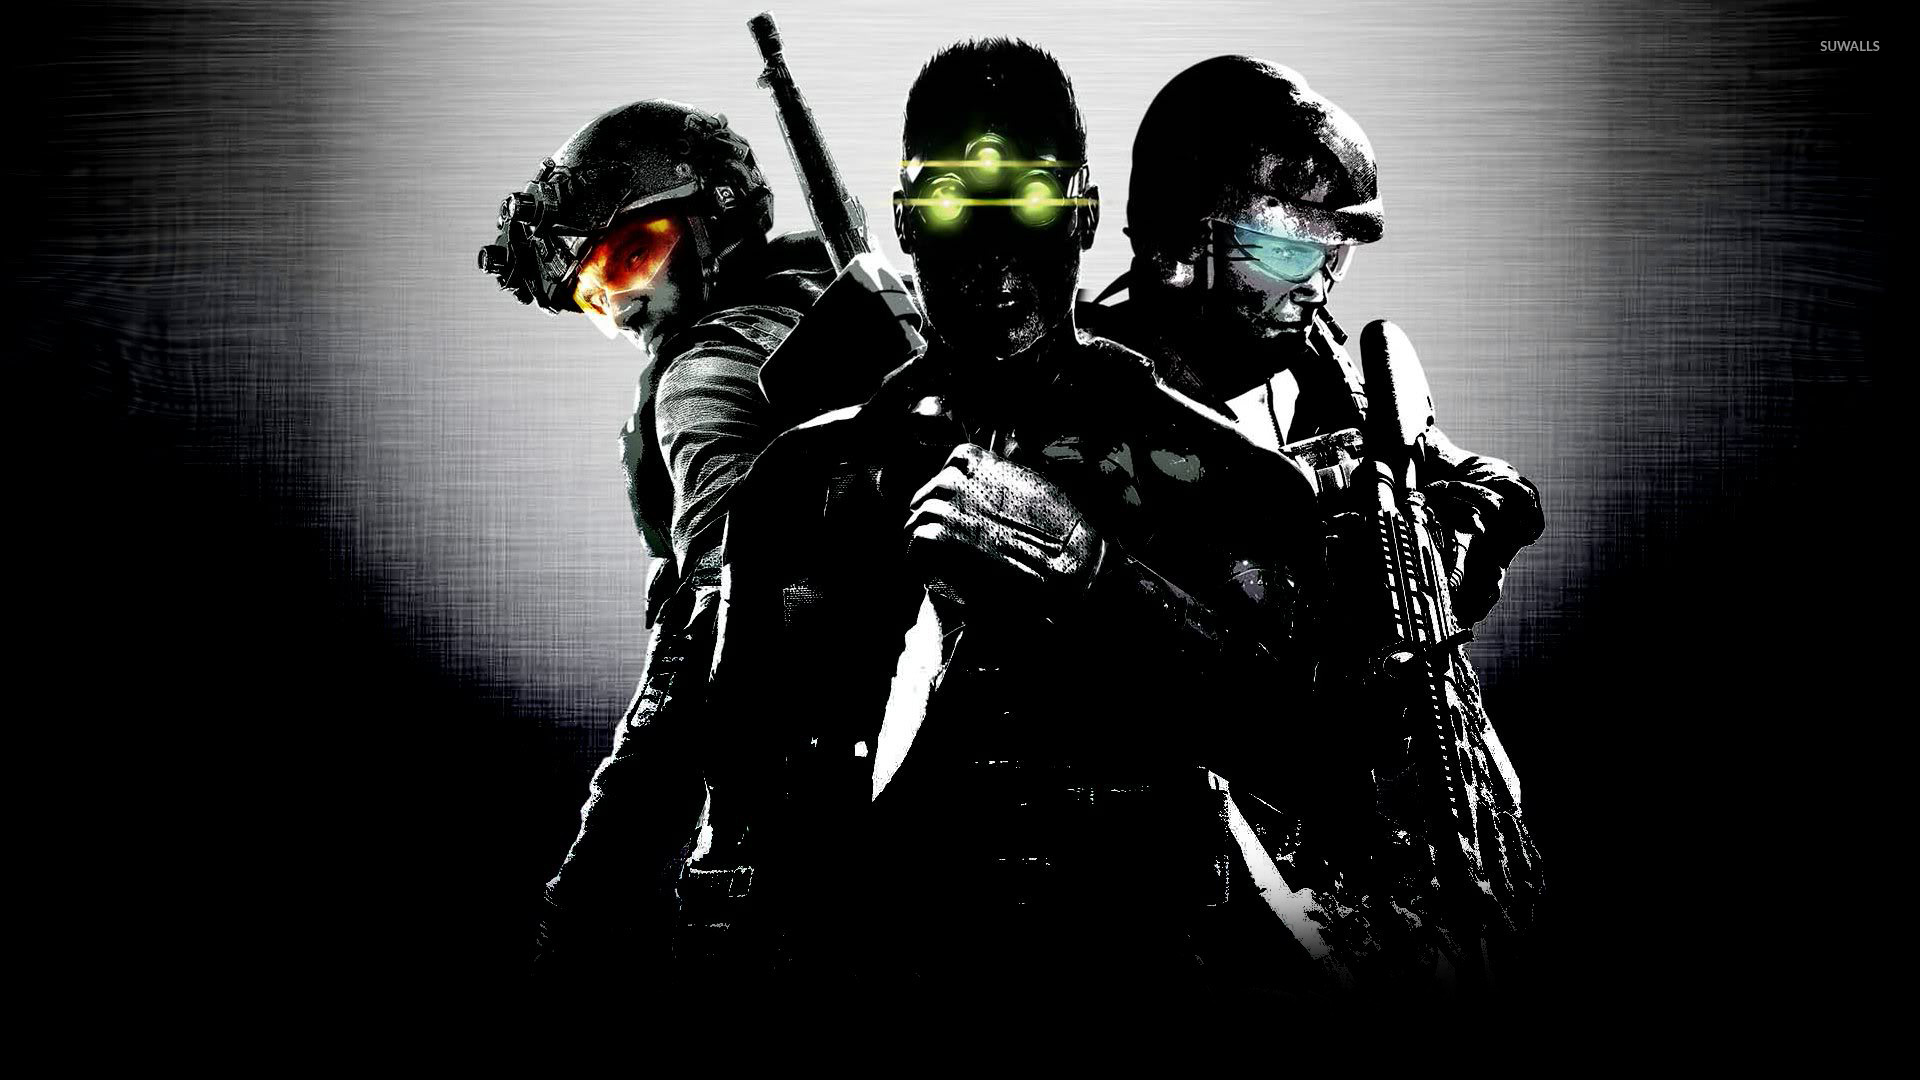 Tom Clancy39s games wallpaper Game wallpapers 17661 1680x1050